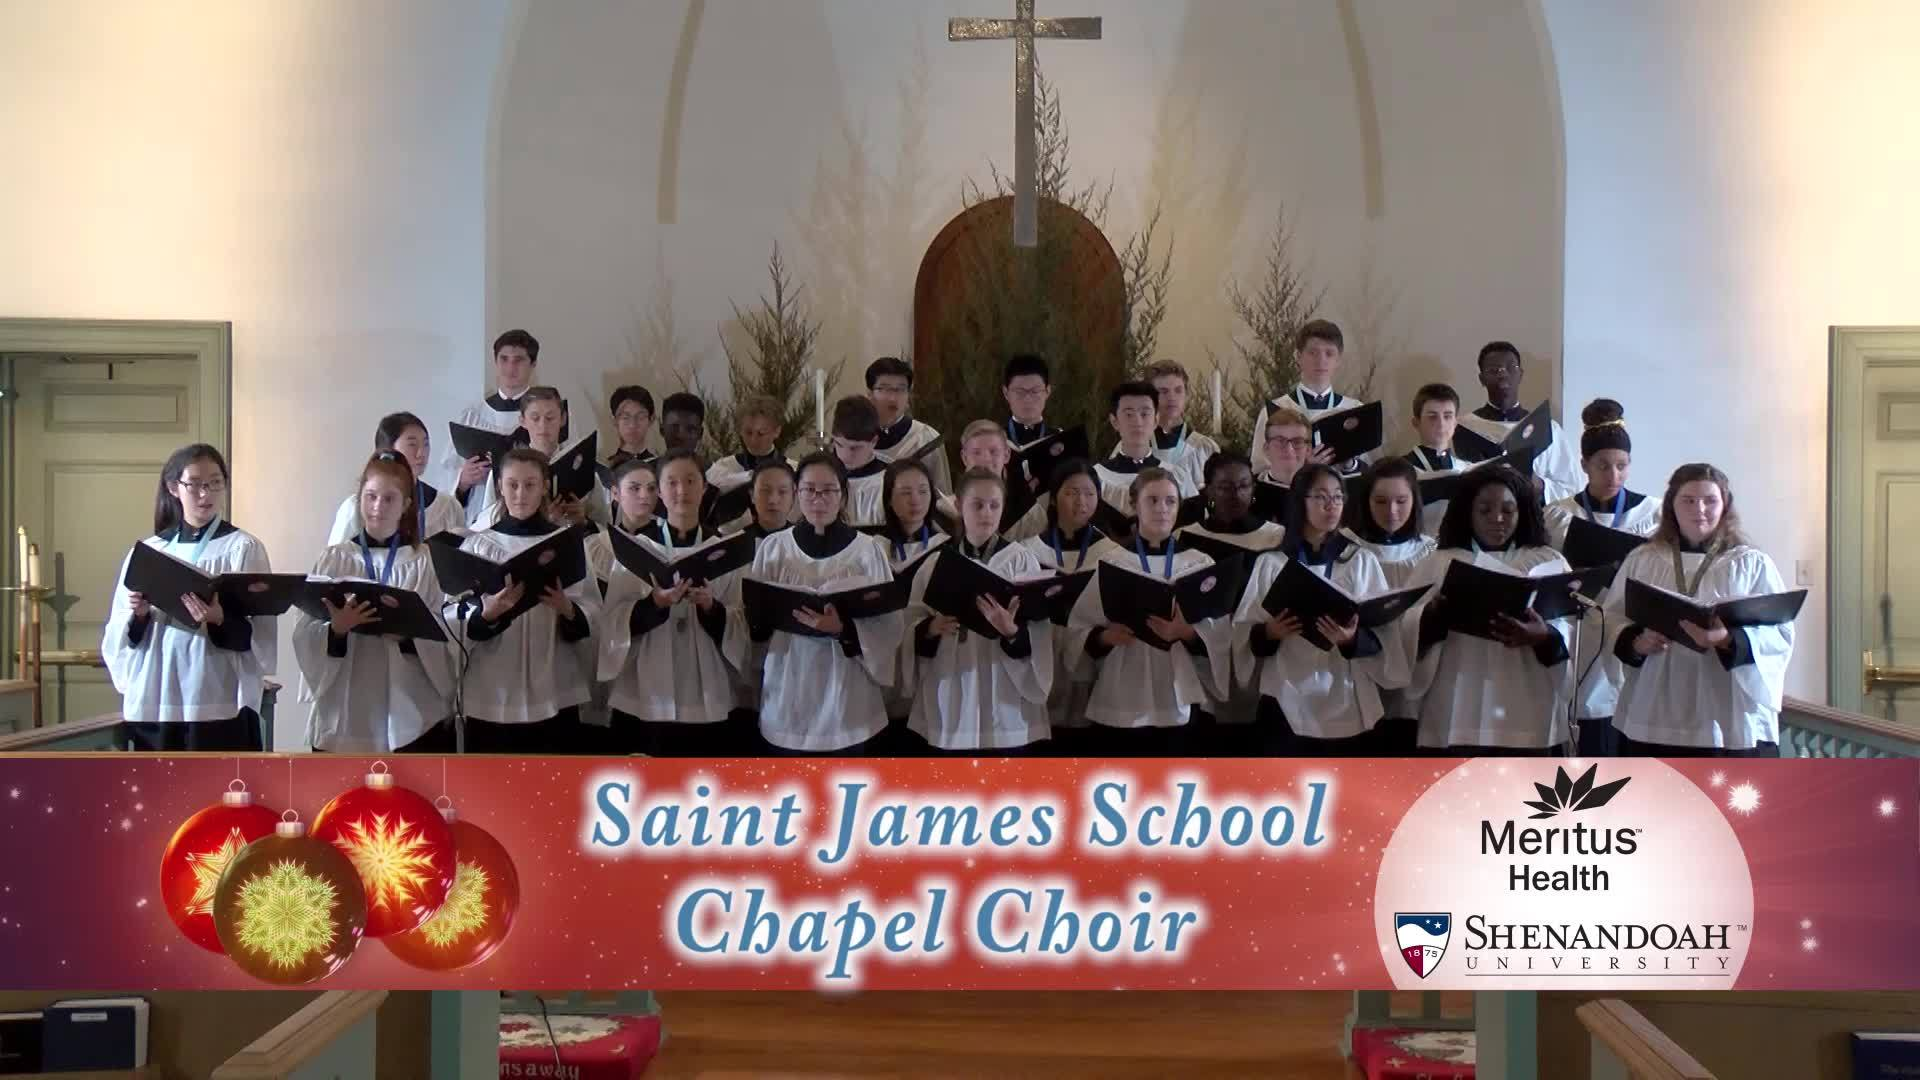 Saint James School - Ding! Dong! Merrily On High